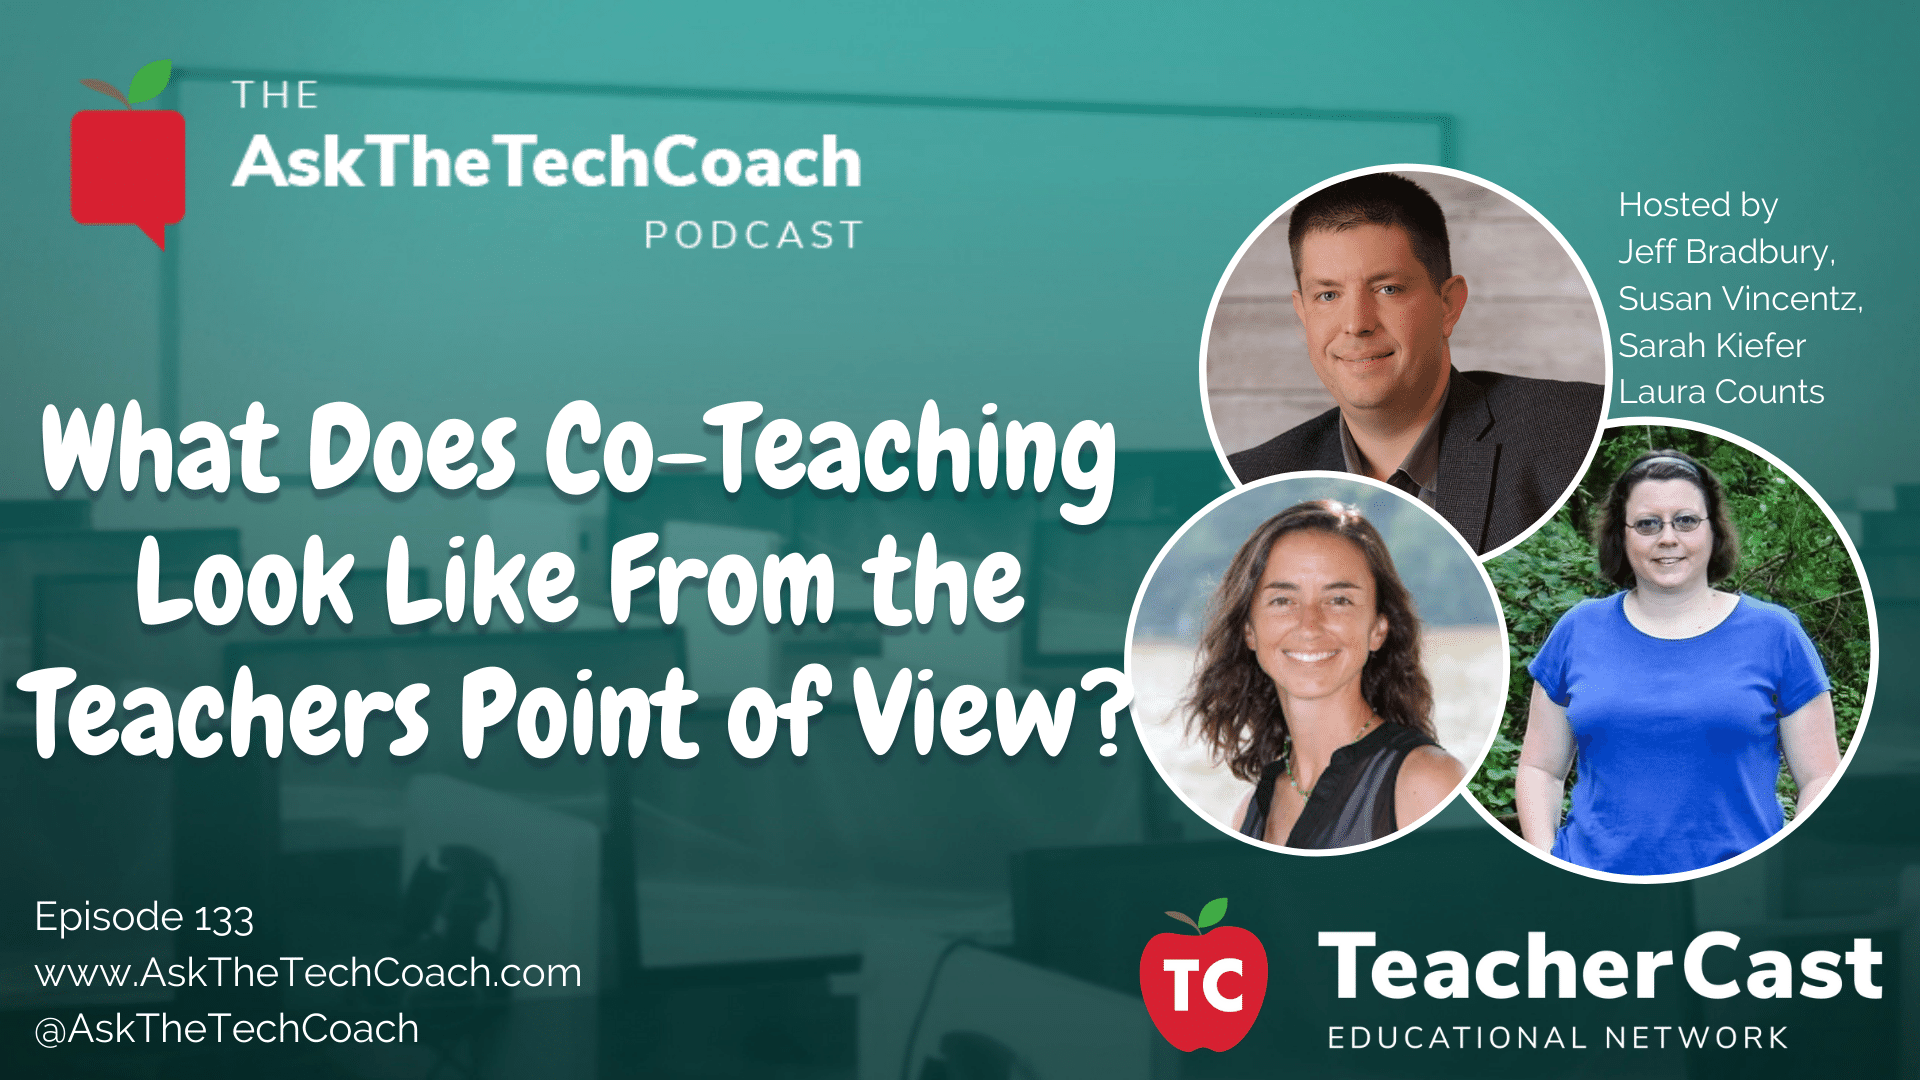 What Does Co-Teaching Look Like?